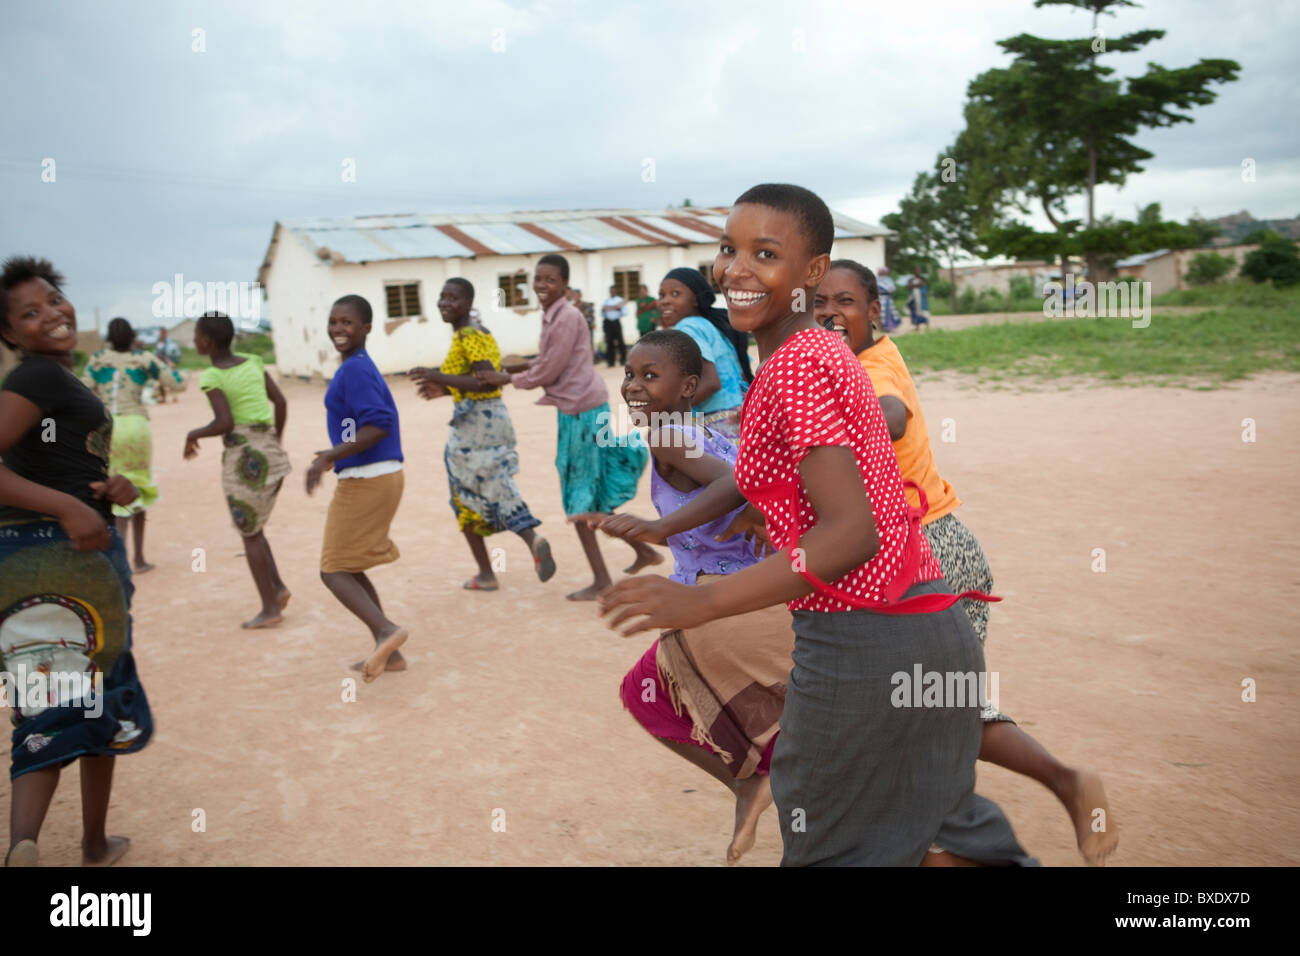 Adolescent girls attend an after school program in Dodoma, Tanzania, East Africa. Stock Photo